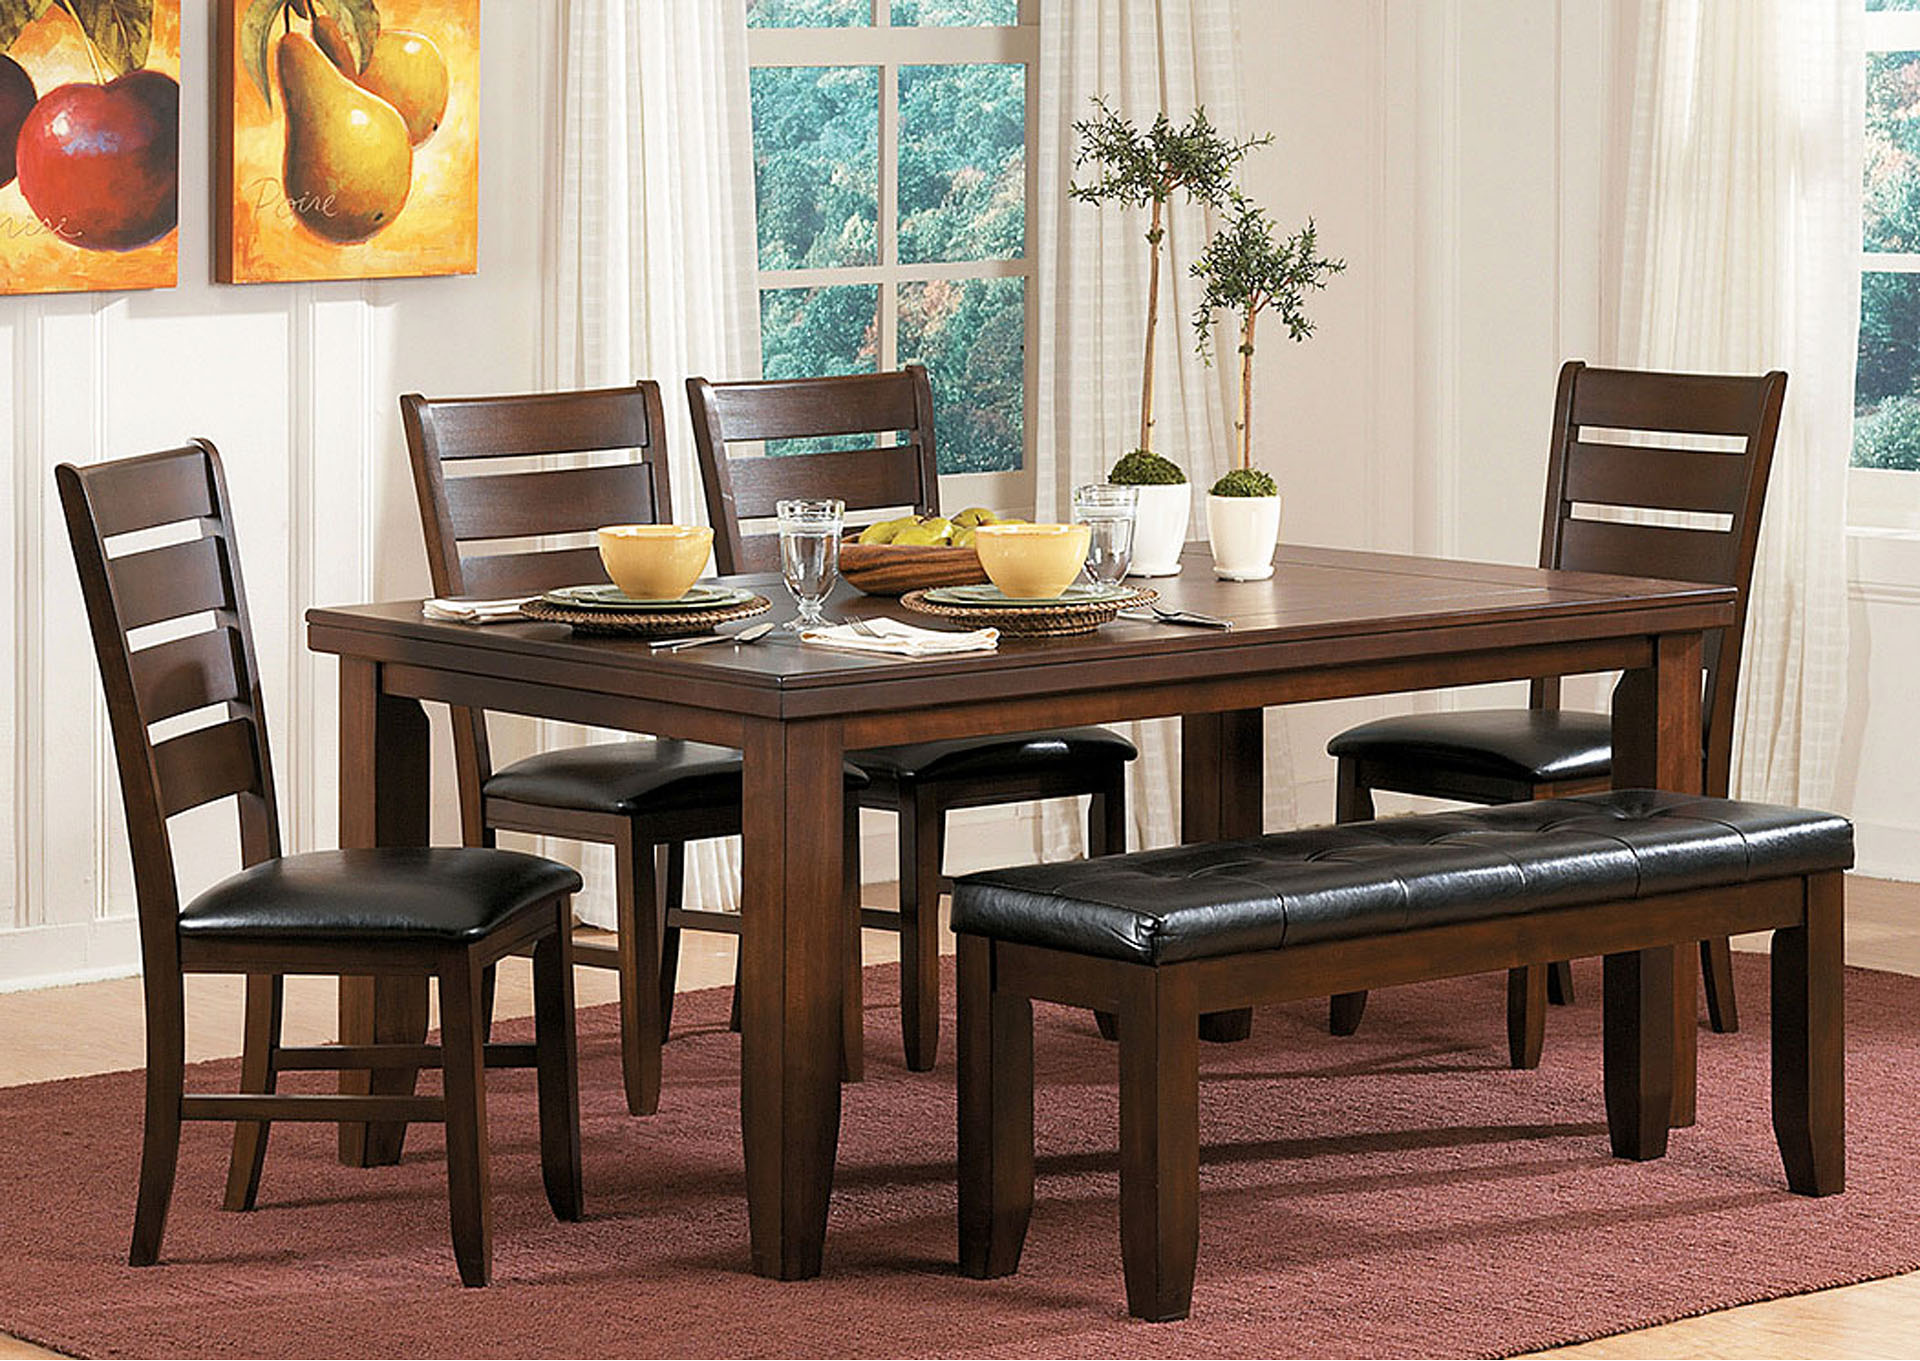 Ameillia Rectangular Dining Table w/4 Side Chairs,Homelegance